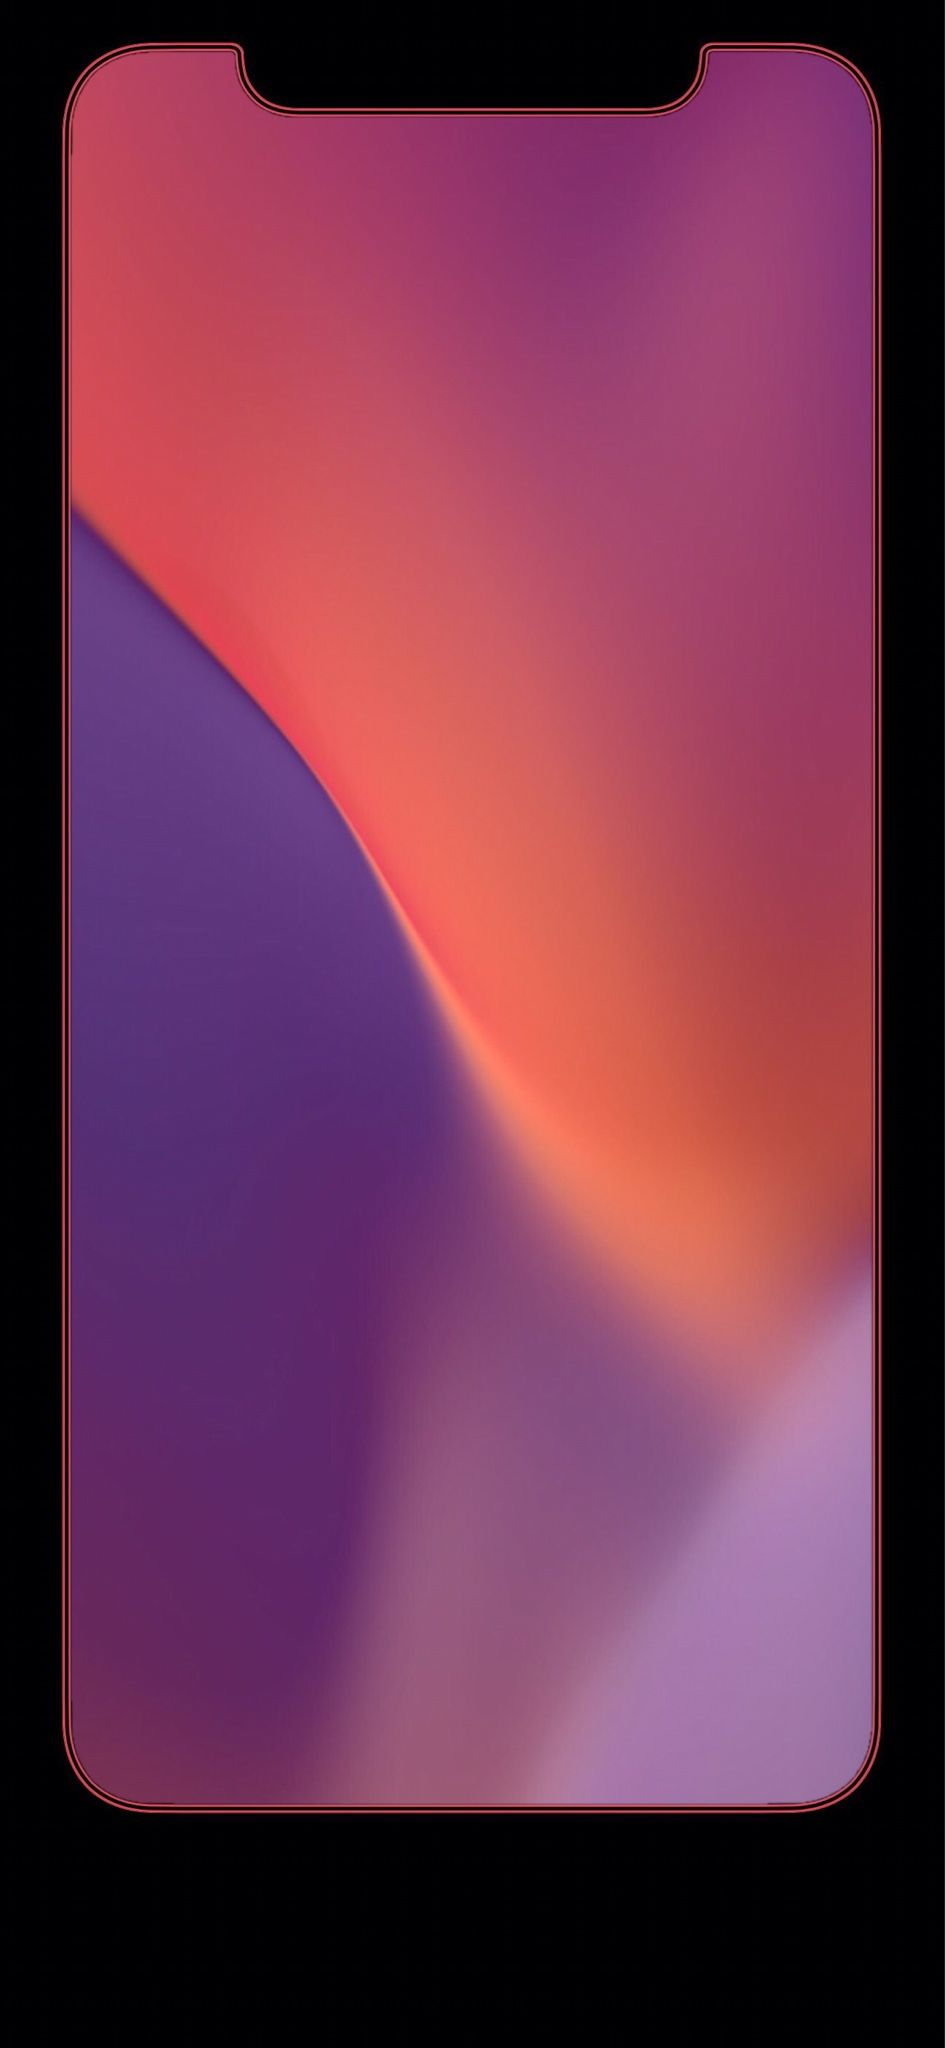 The iPhone X/Xs Wallpaper Thread Page 50 iPhone, iPad